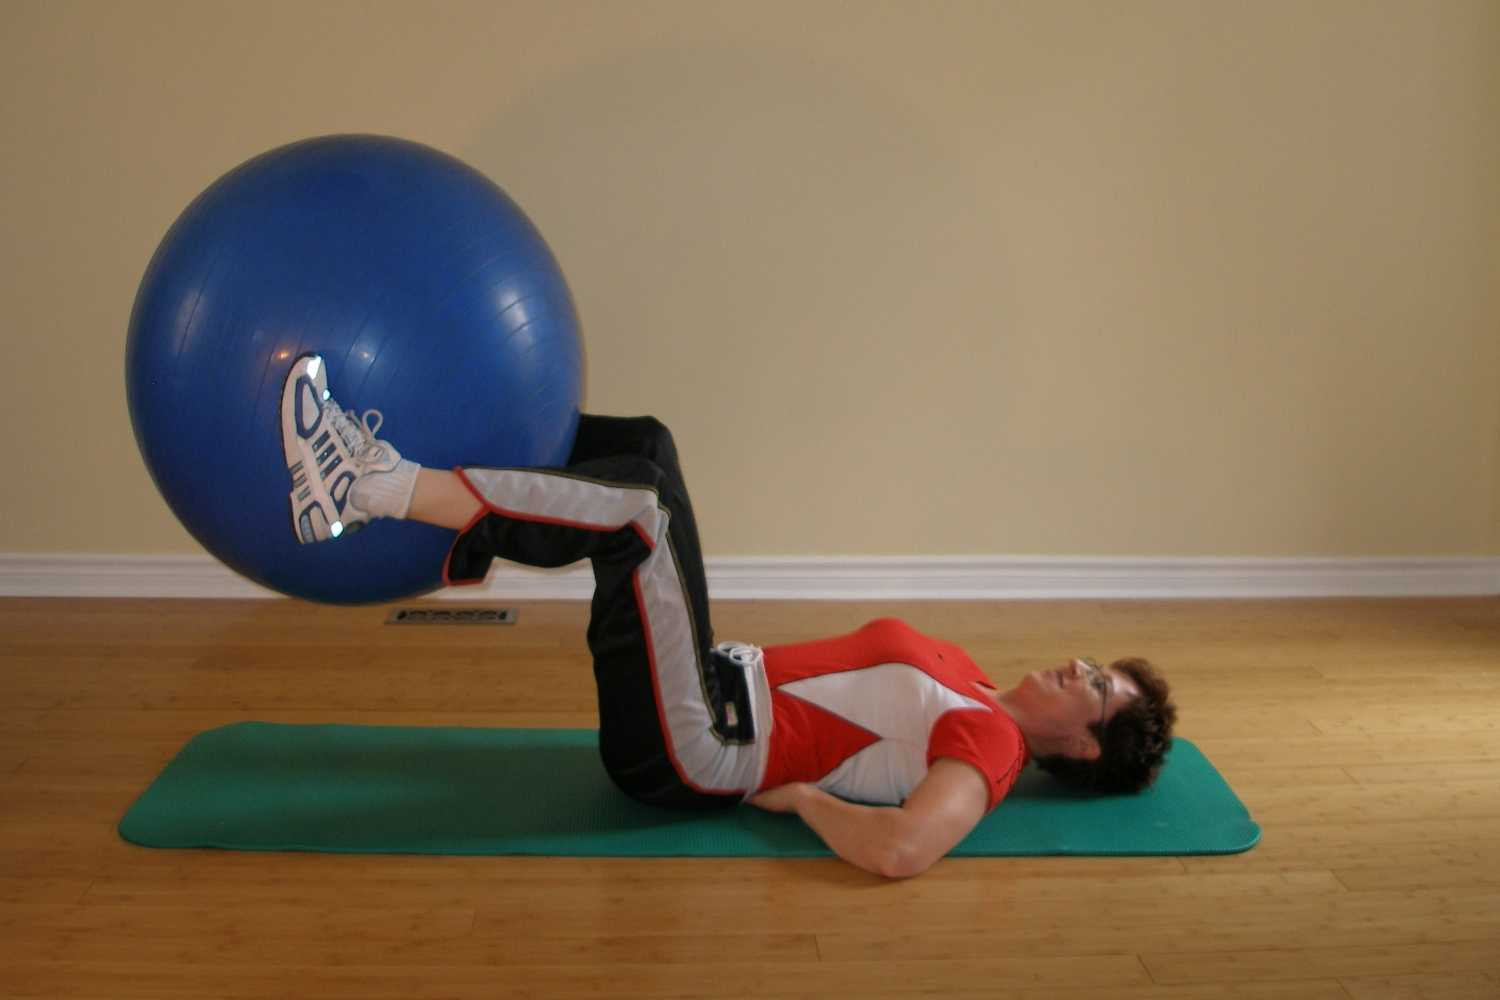 lower the exercise ball while keeping knees stationary